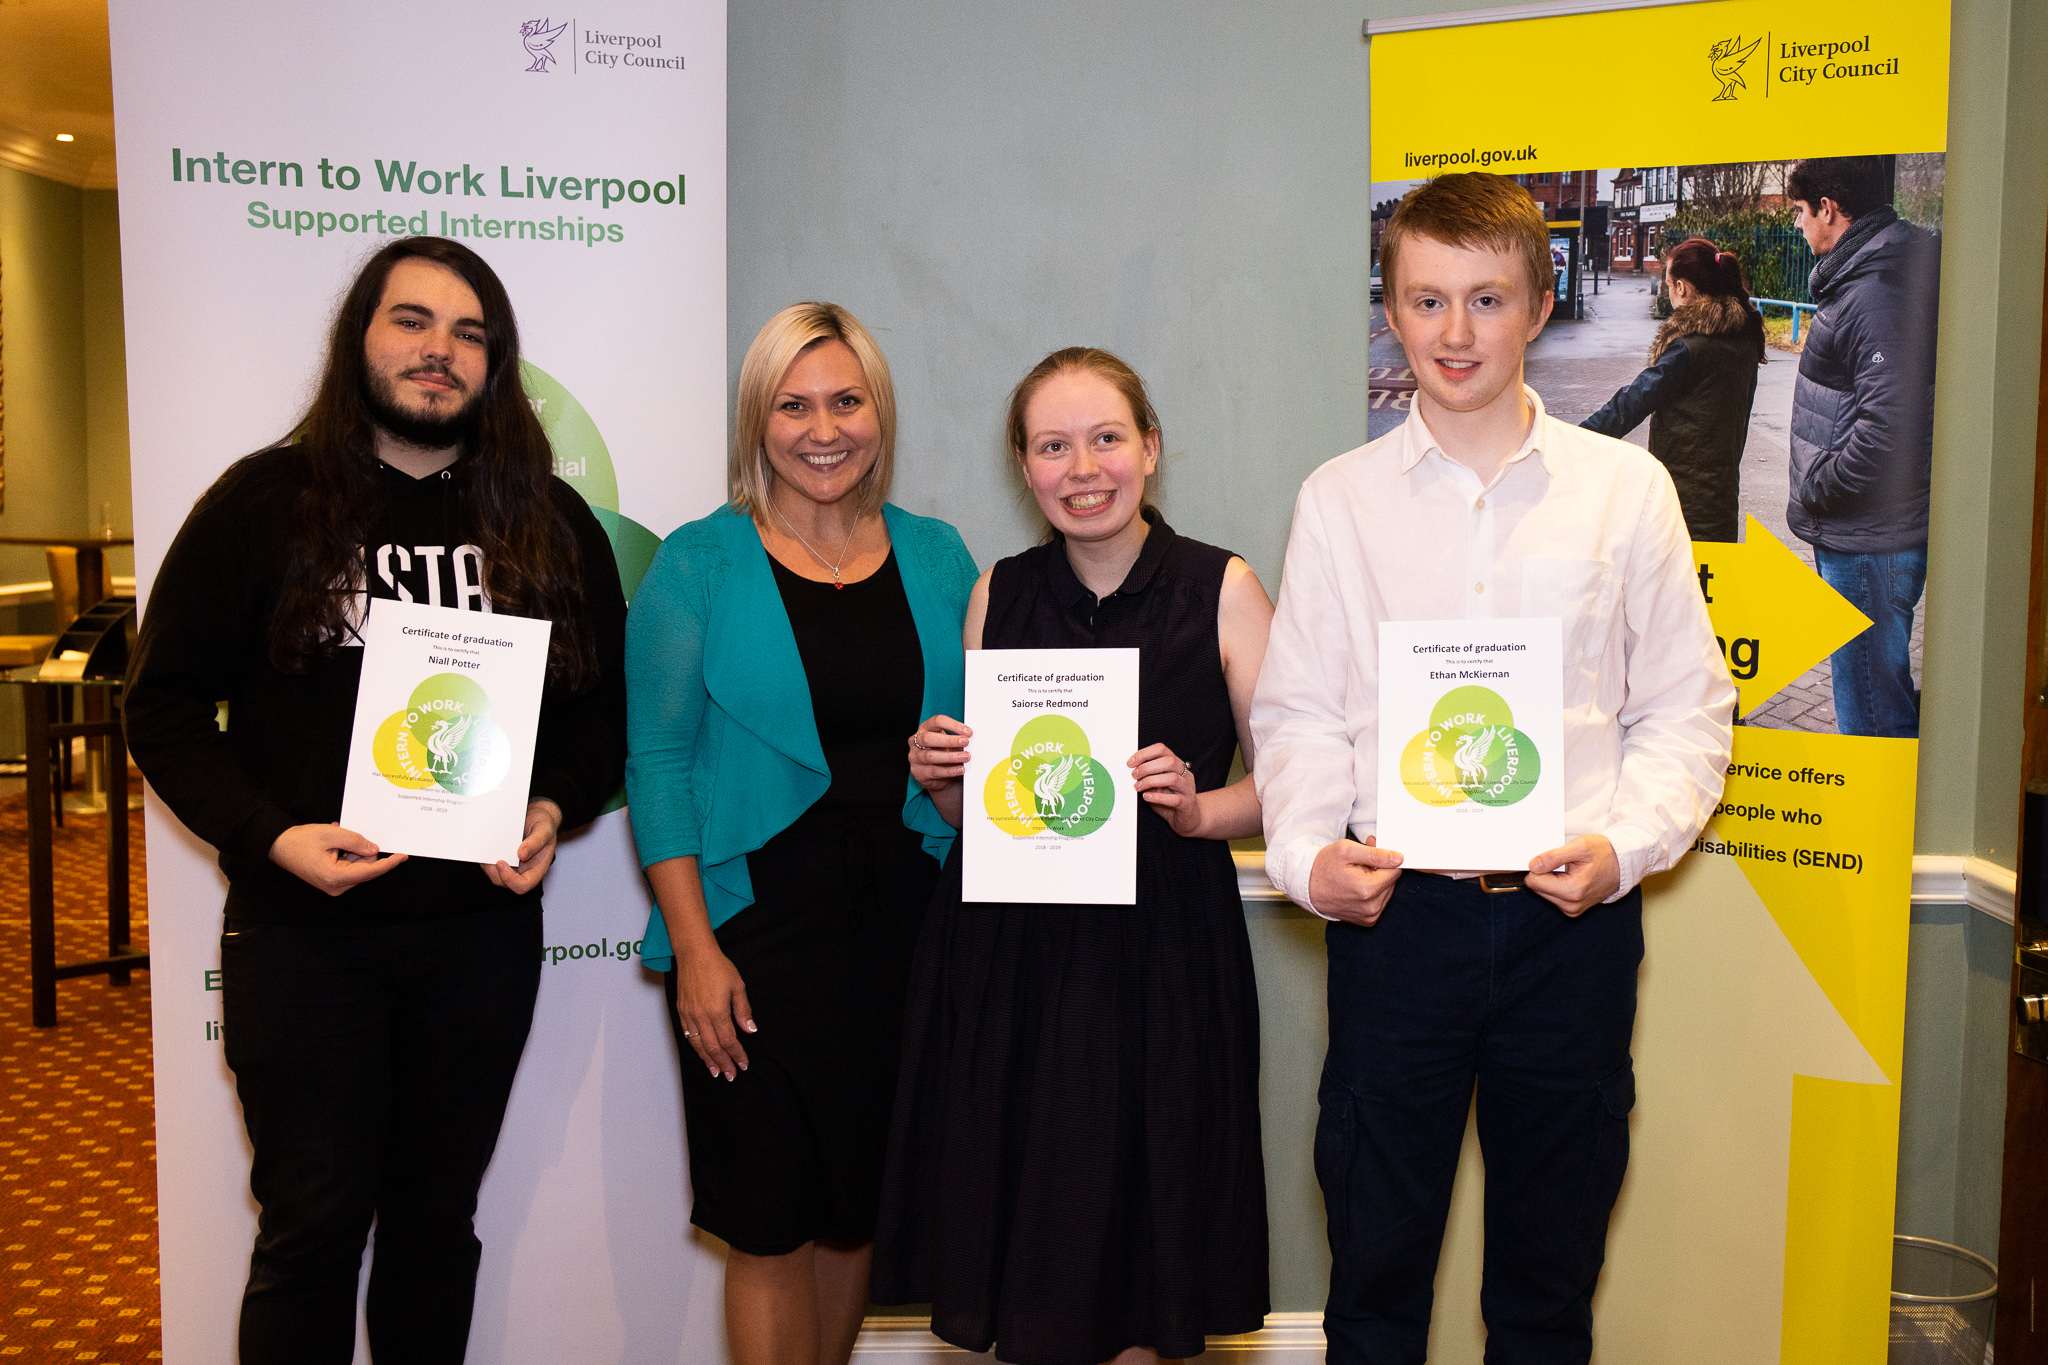 Niall, Saoirse and Ethan, supported interns from Abbot's Lea School based at Amey PLC with their graduation certificates and their head teacher Ania Hildrey.